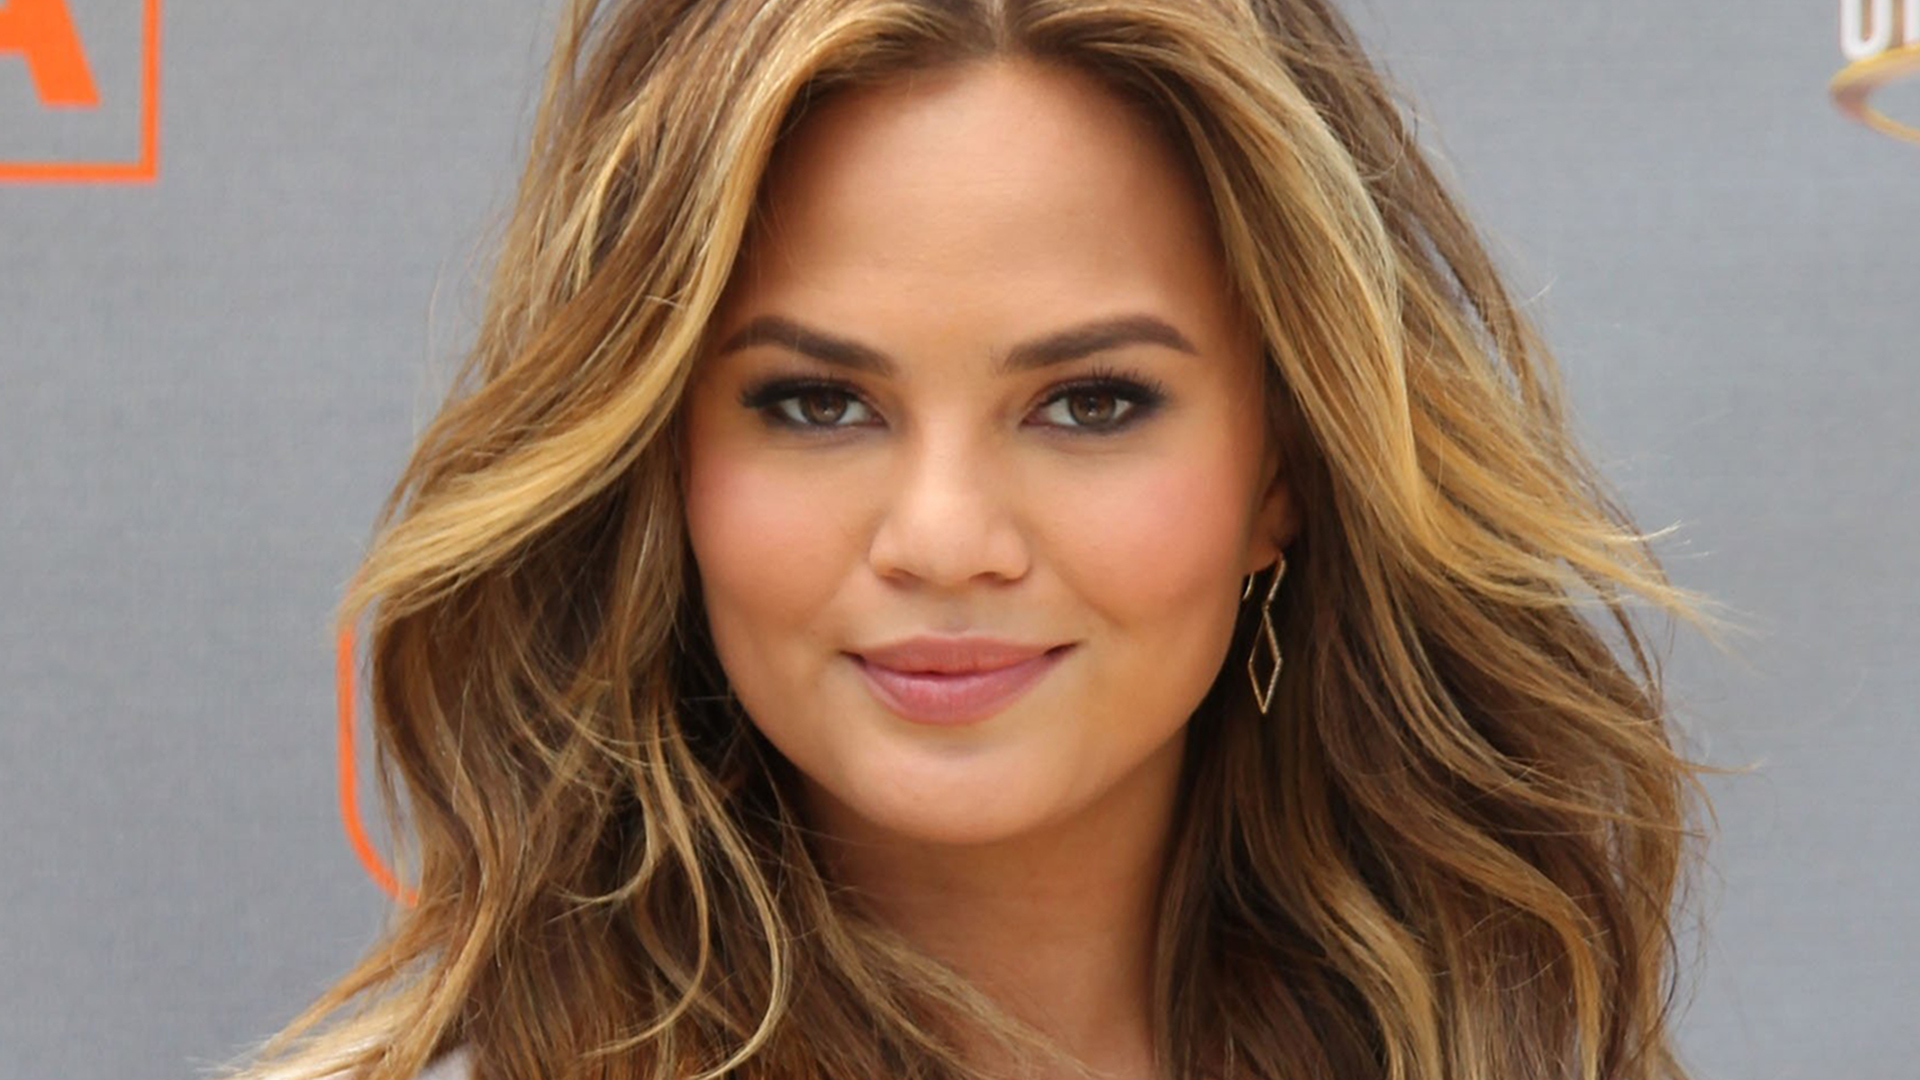 Tips: Chrissy Teigen, 2018s Bun hair style of the confident mysterious  model